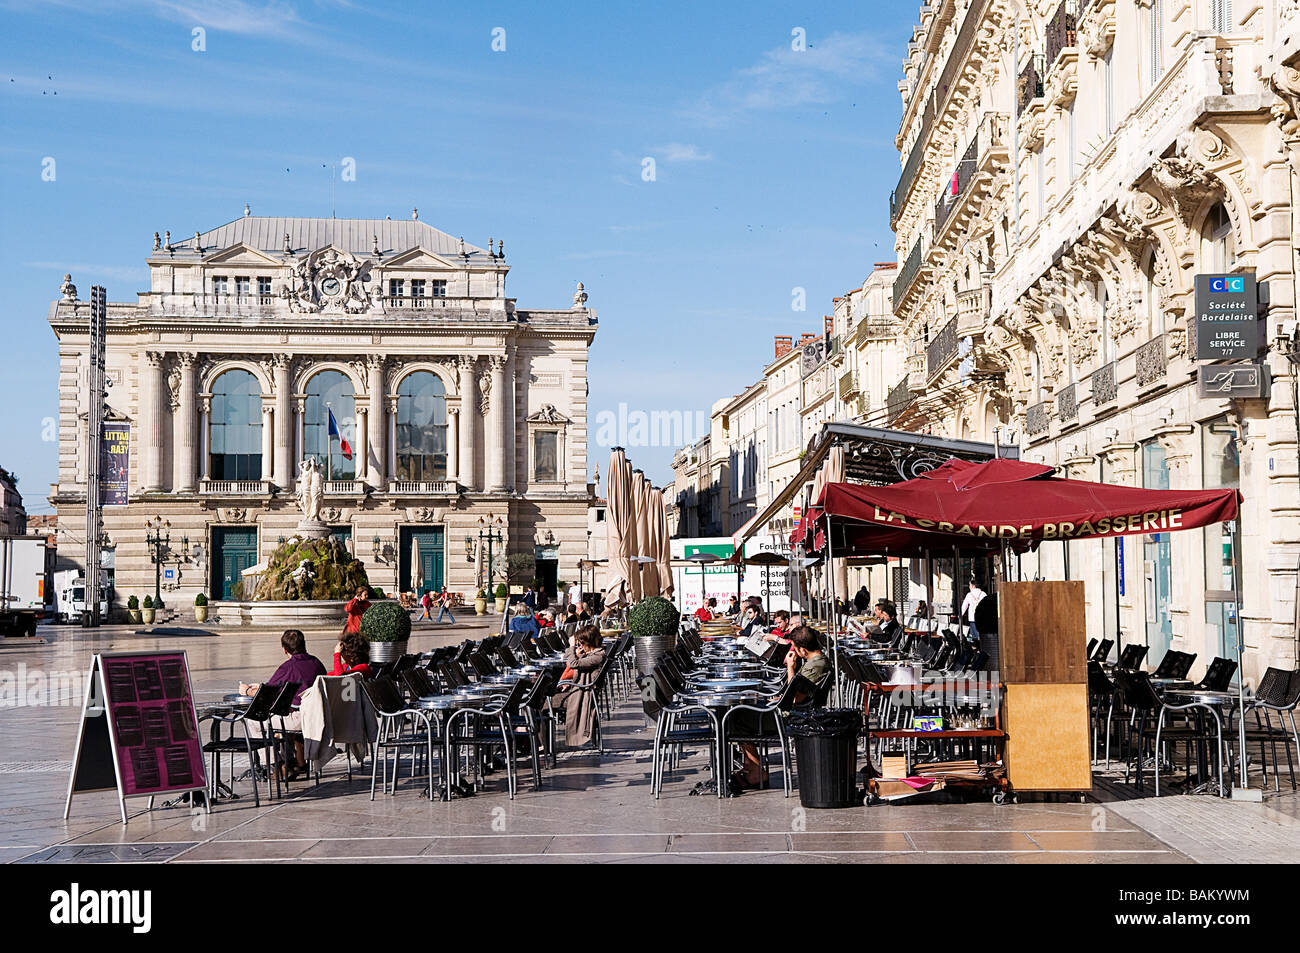 france herault montpellier place de la comedie comedy square stock photo royalty free image. Black Bedroom Furniture Sets. Home Design Ideas